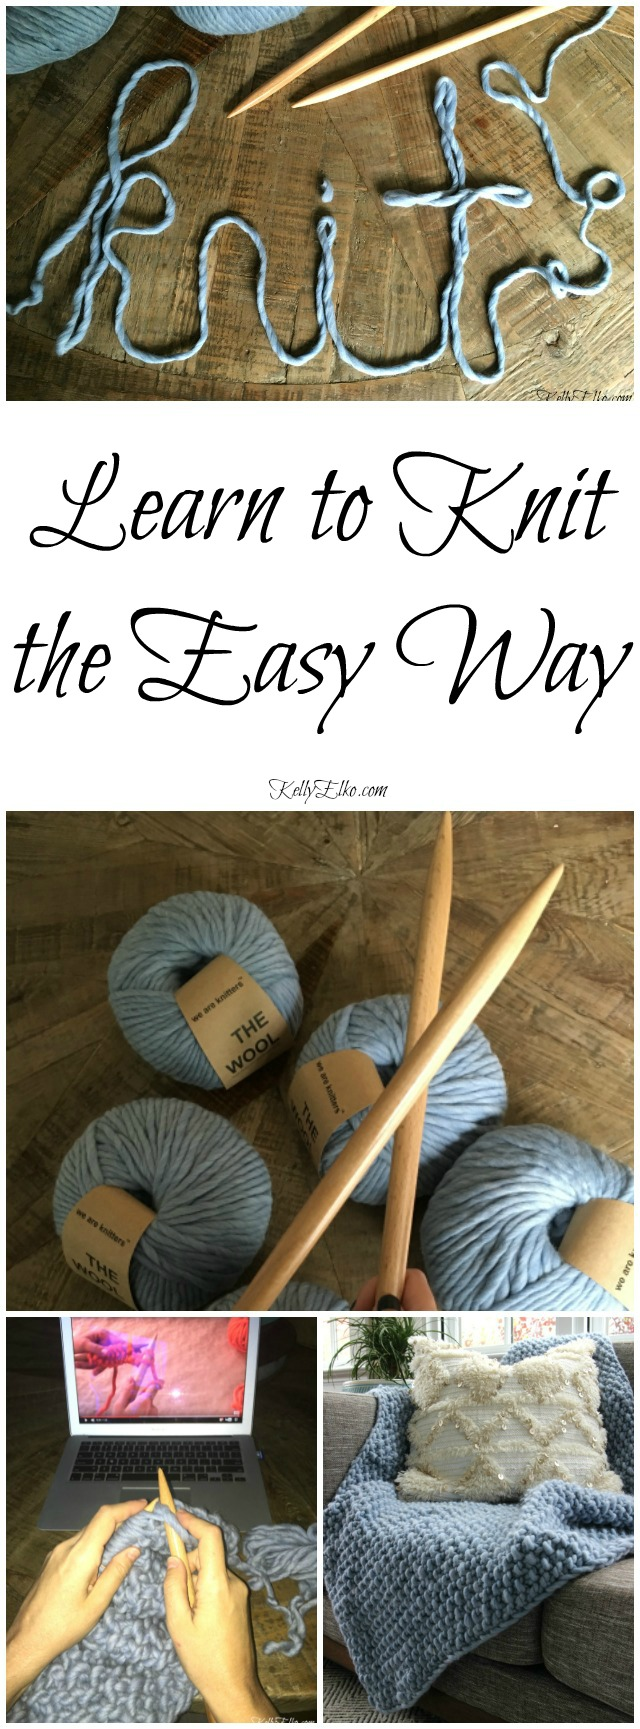 Learn to Knit the Easy Way! Make a chunky wool blanket even if you've never knit before kellyelko.com